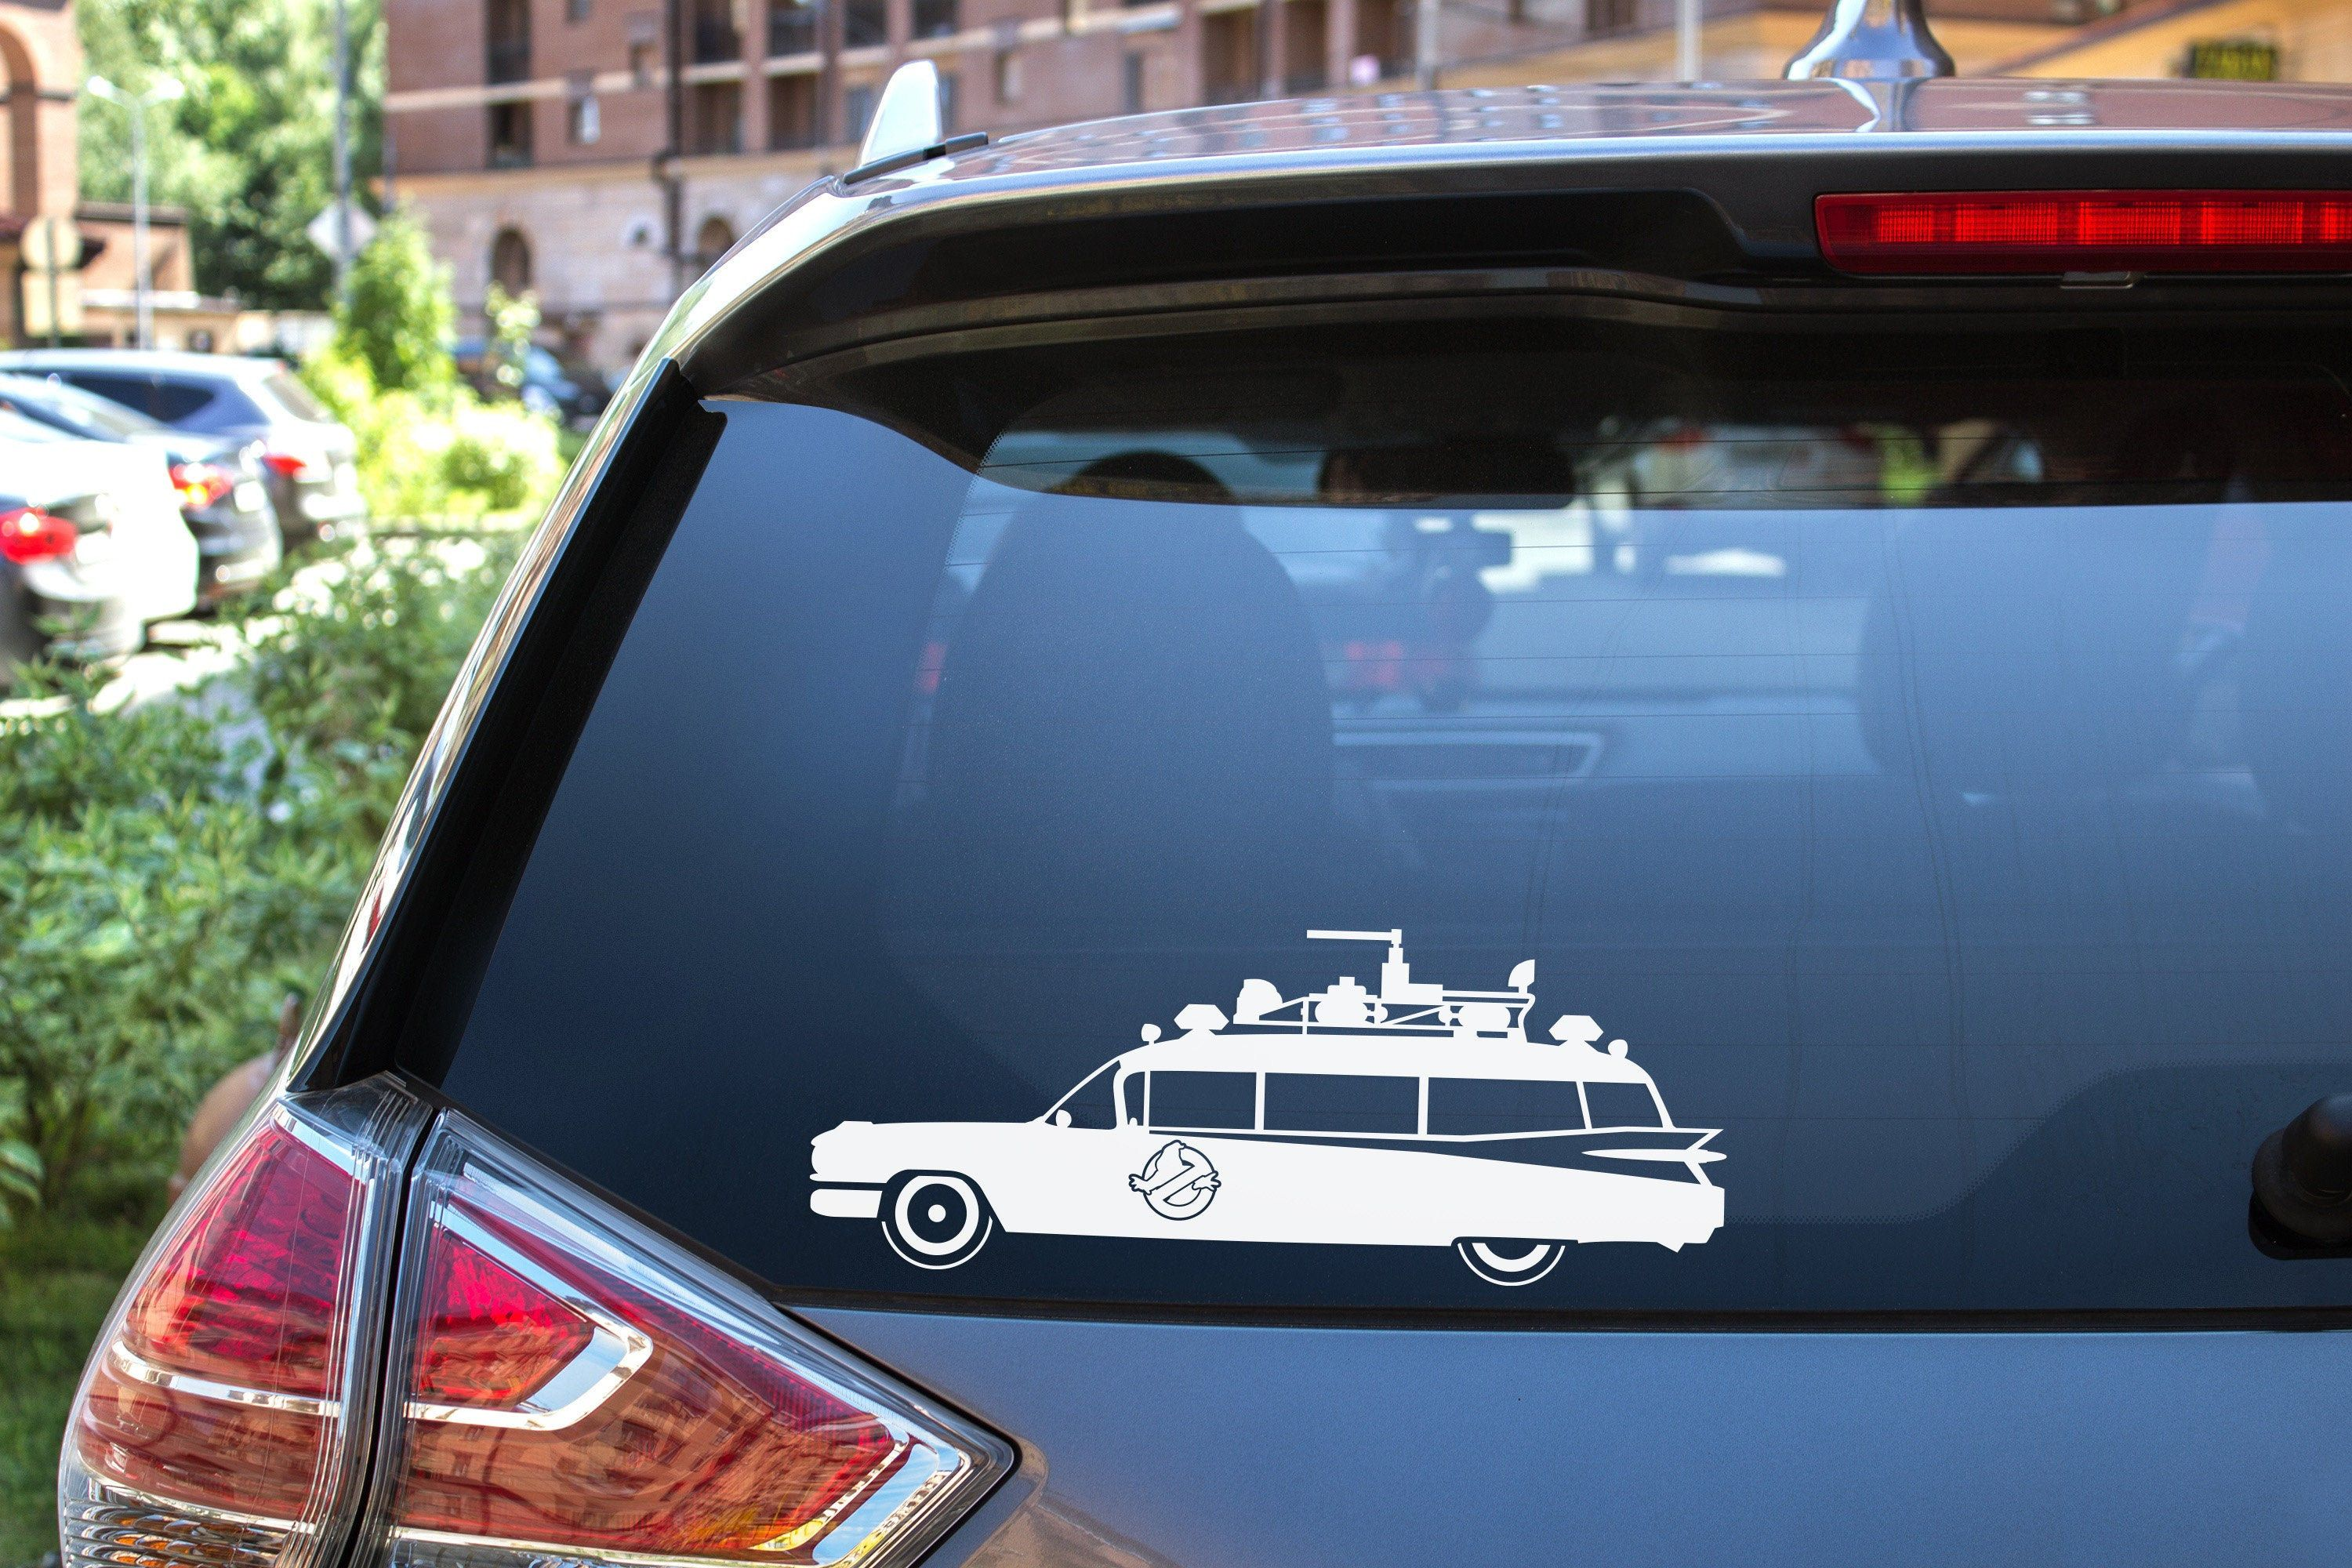 Ghostbusters Vinyl Decal Sticker Ecto 1 Car Decal Sticker Etsy Laptop Decal Stickers Car Decals Car Decals Stickers [ 2000 x 3000 Pixel ]